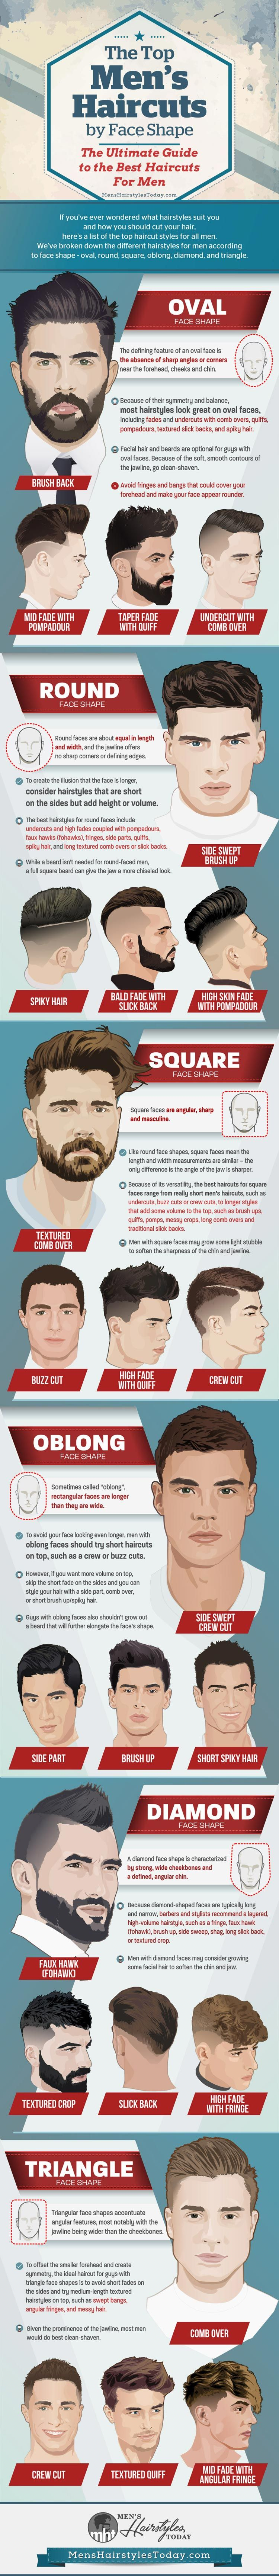 The Top Men's Haircuts by Face Shape